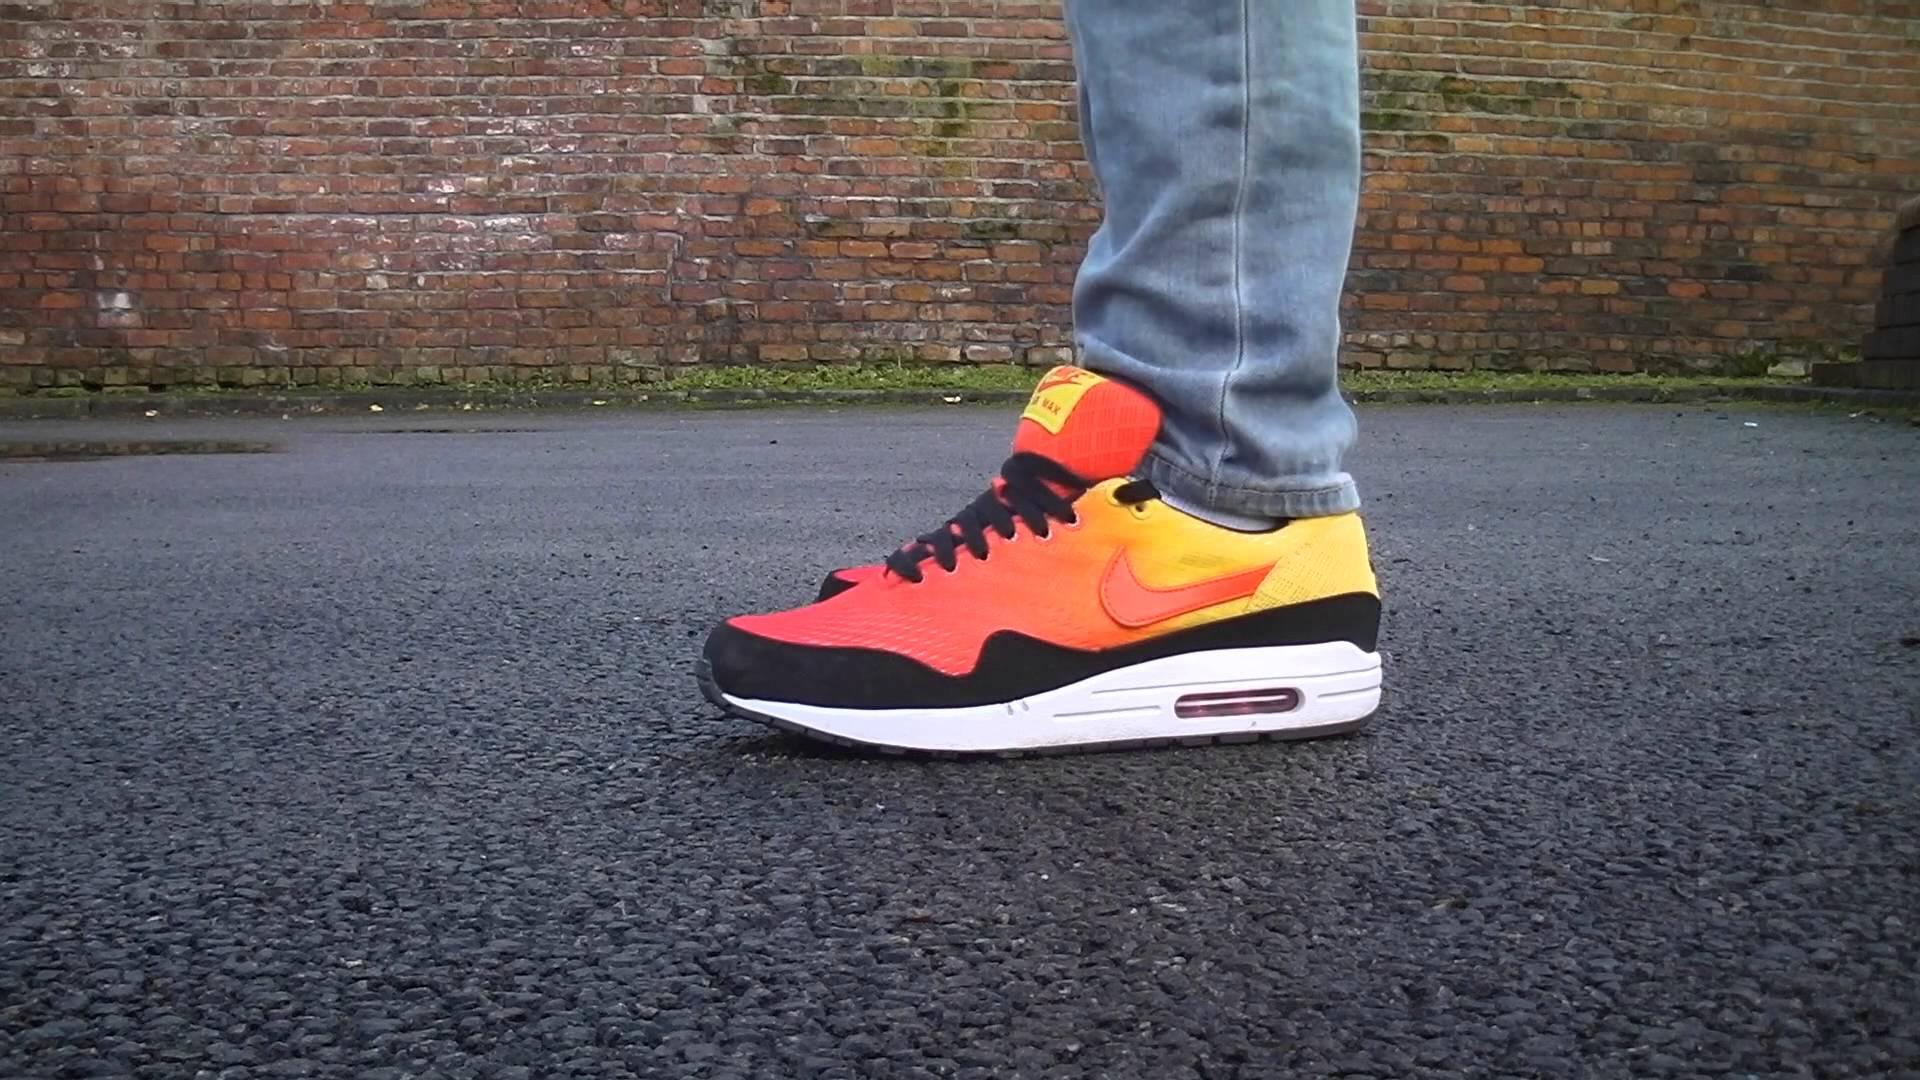 Nike air max 1 'sunset series' - Live look & onfeet review - YouTube